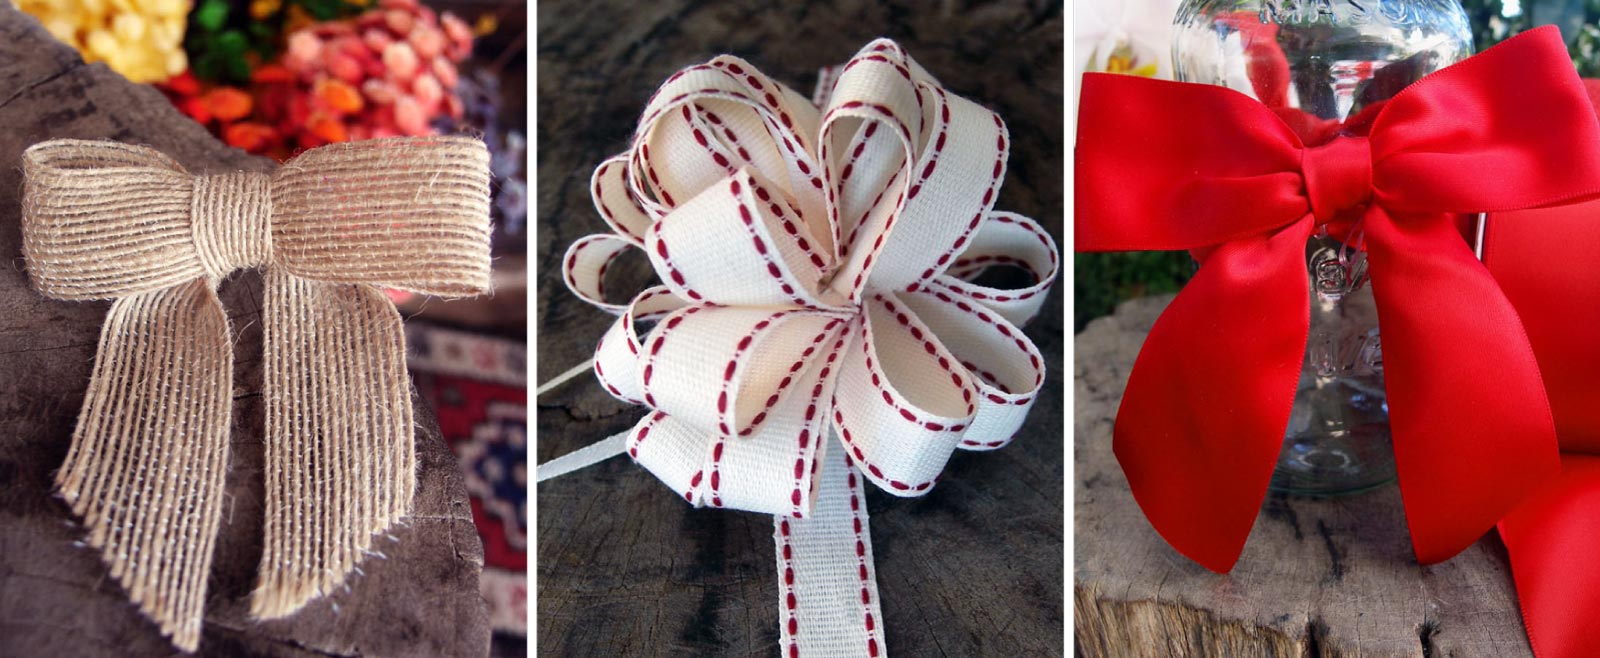 Wholesale Pre Tied Bows, Satin, Organza, and Raffia